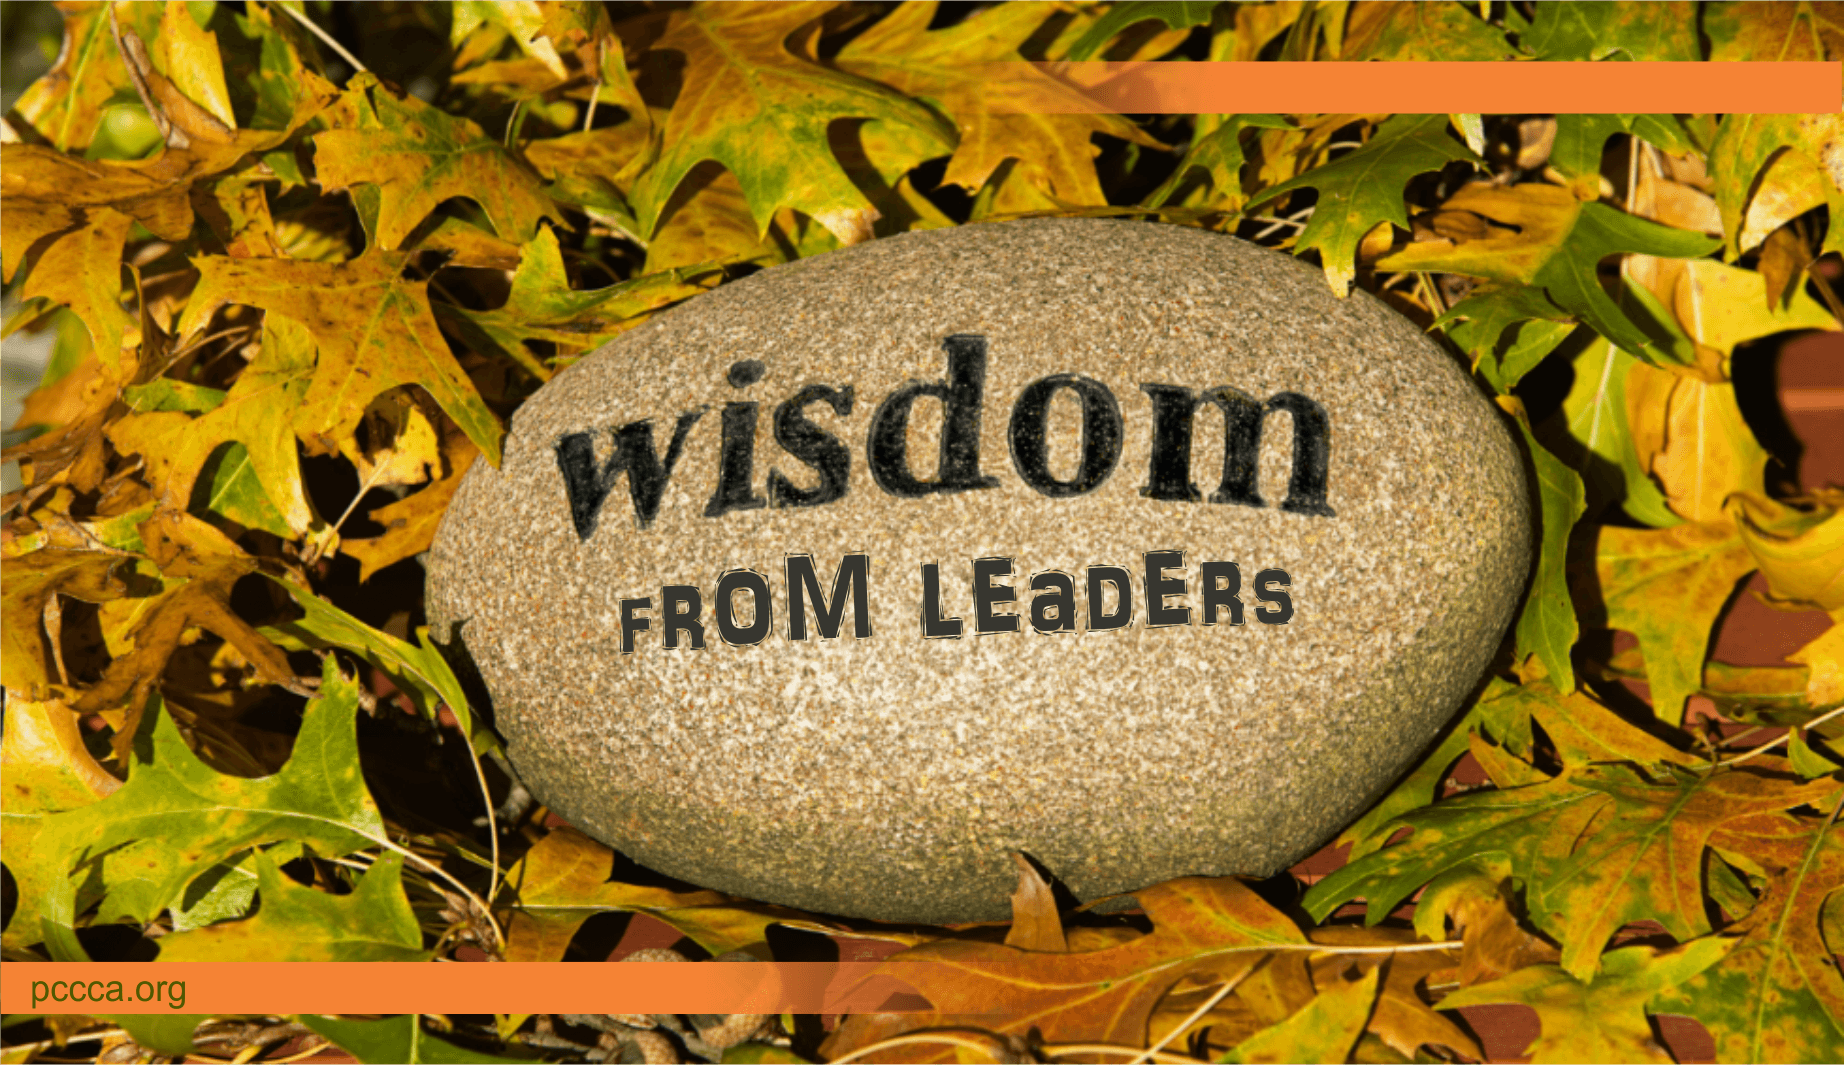 wisdom from leaders https://pccca.org